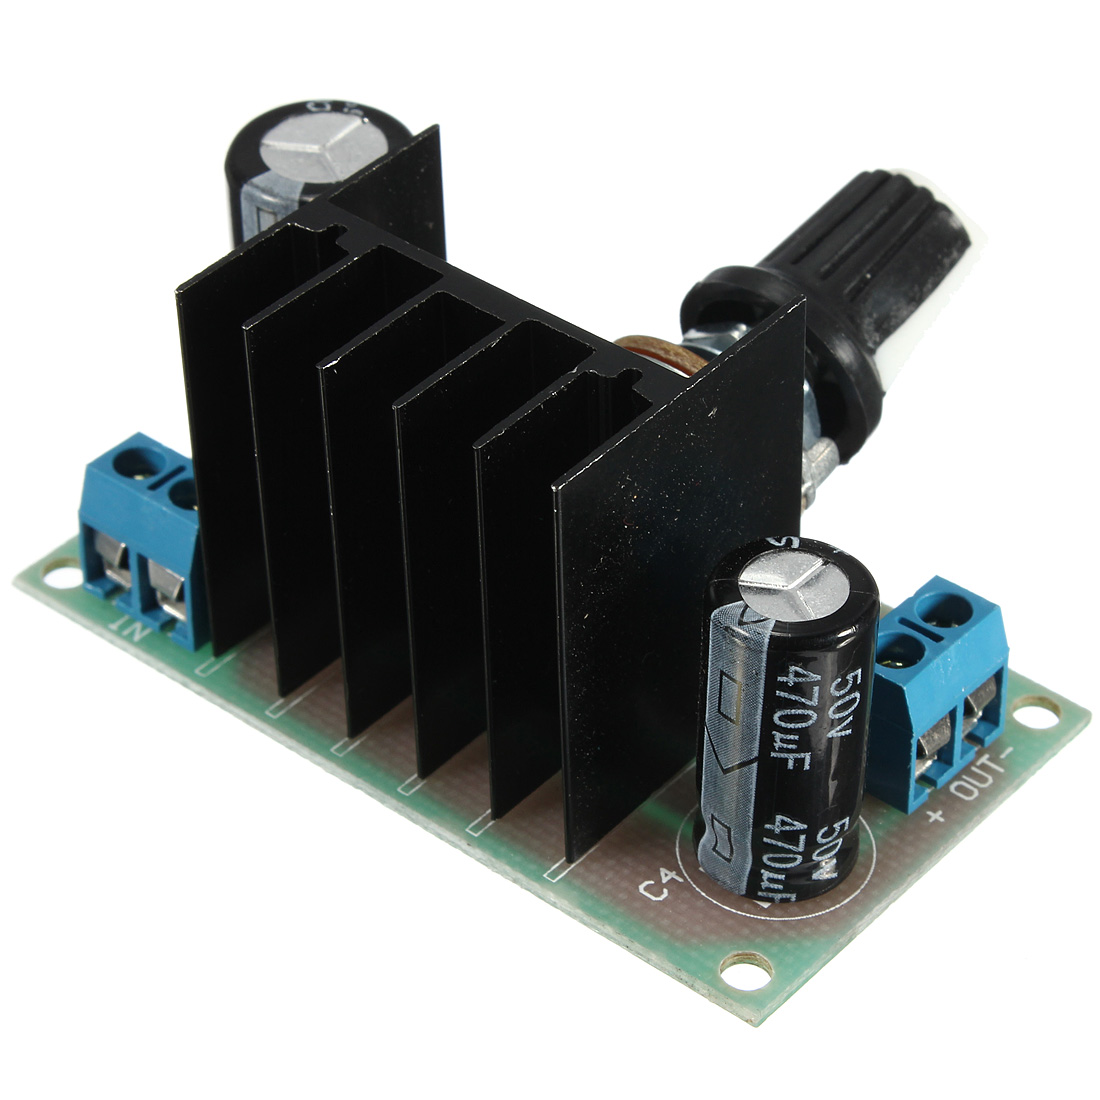 Hot Sale Electronic Circuit Board Dc Ac To Lm317 Power Continuous Understanding This Led Driver Electrical Engineering Adjustable Voltage Regulator 125v 37v Usa In Integrated Circuits From